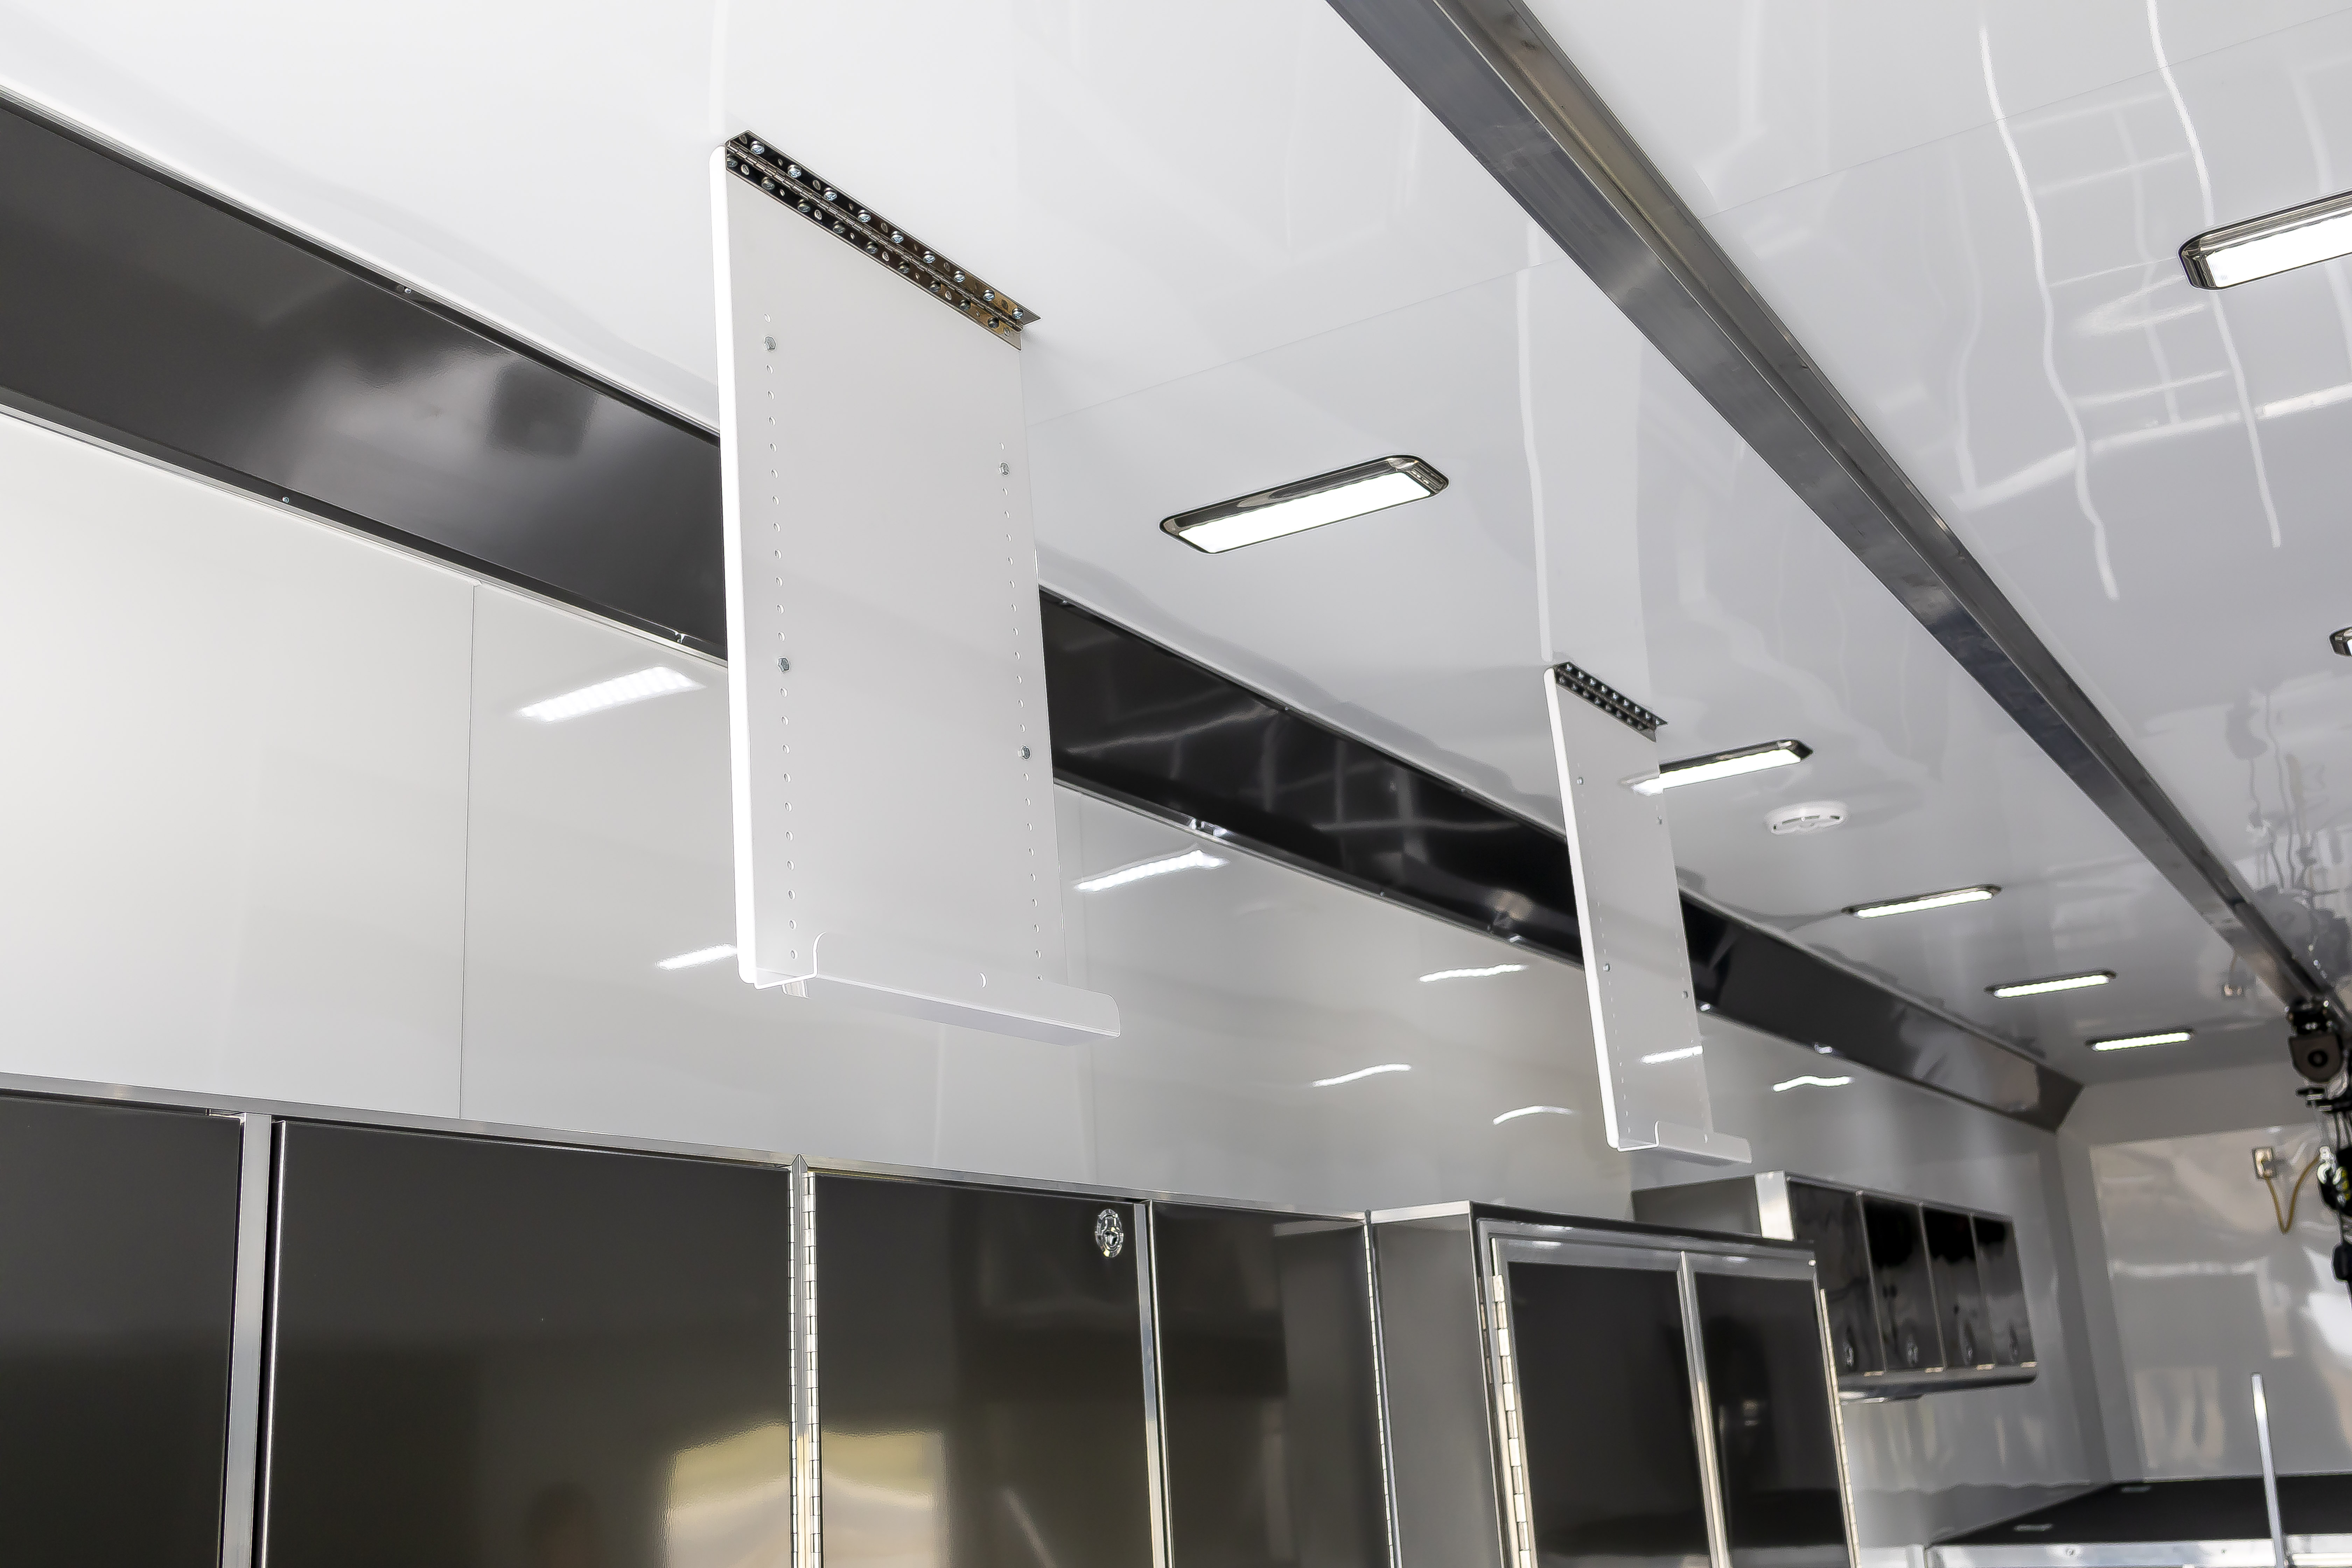 TOP WING SECURING PANEL - EXTENDED LENGTH - CEILING MOUNT - WHITE